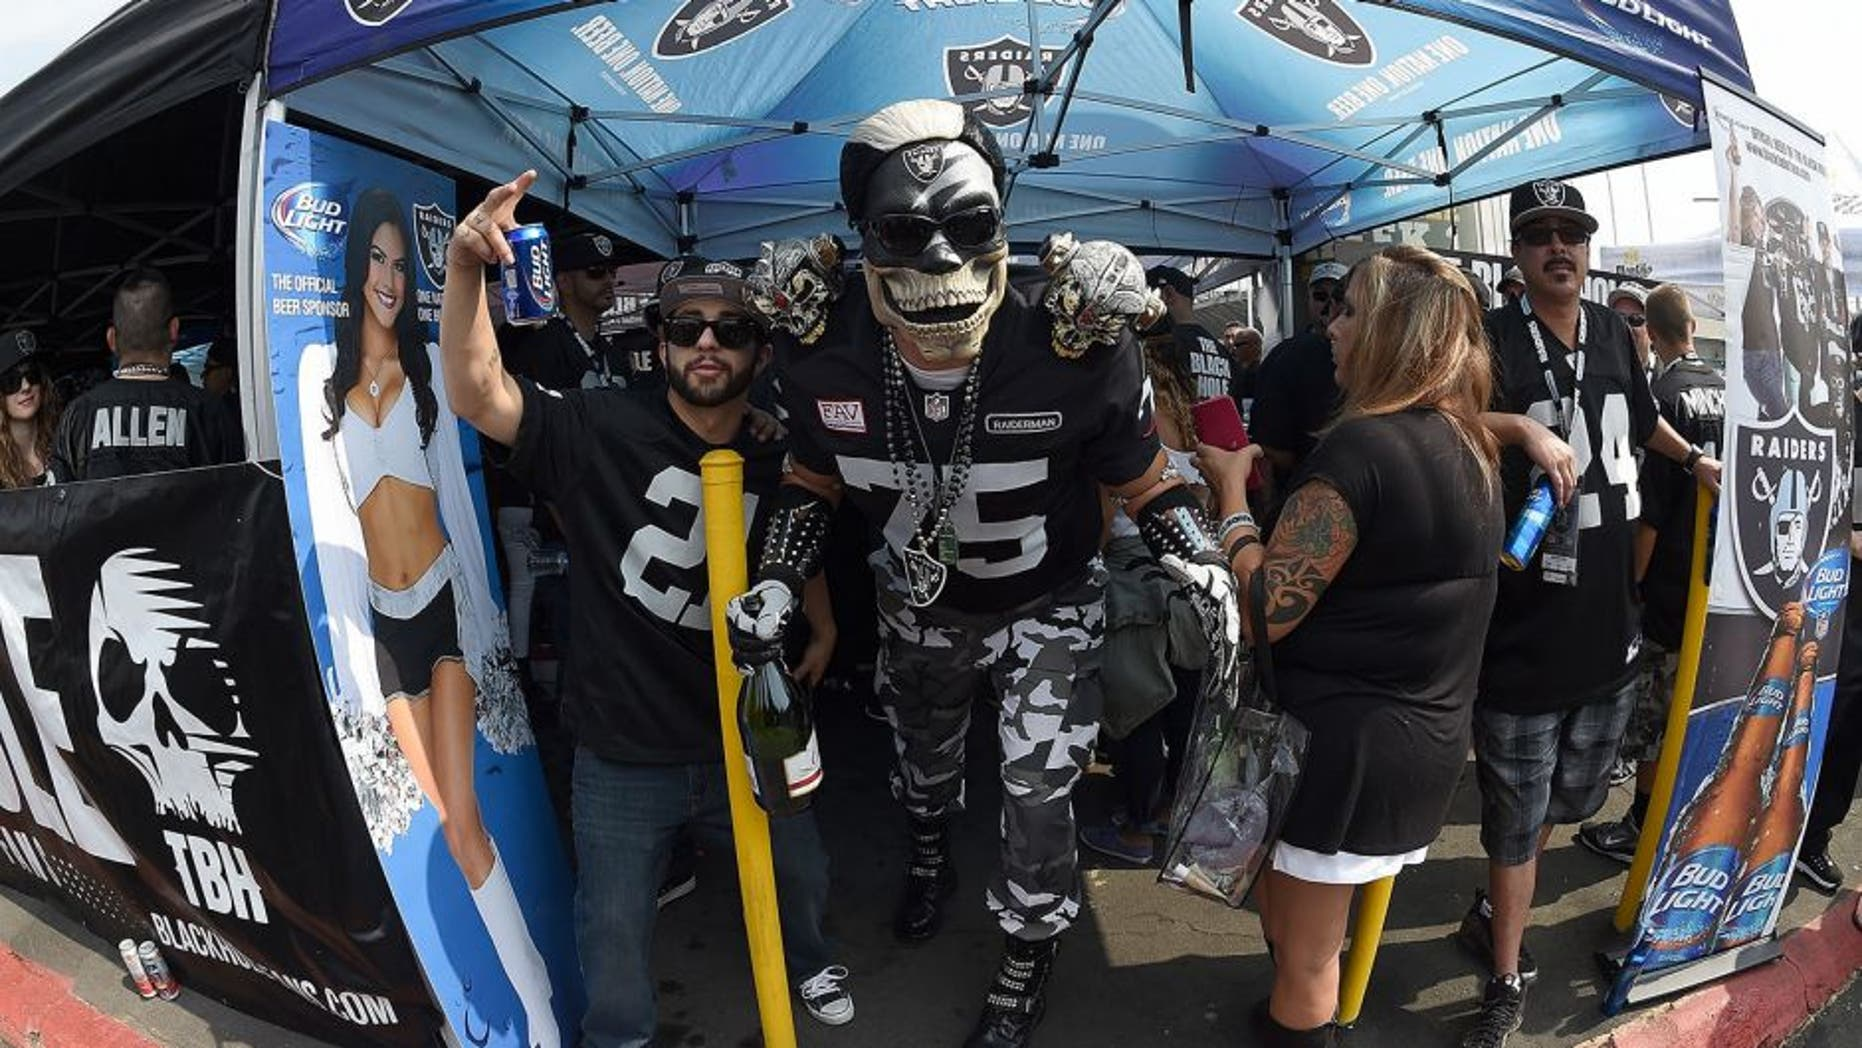 OAKLAND, CA - SEPTEMBER 13: Fans tailgating in the parking lot prior to the Cincinnati Bengals v Oakland Raiders NFL football game at the O.co Coliseum on September 13, 2015 in Oakland, California. (Photo by Thearon W. Henderson/Getty Images)